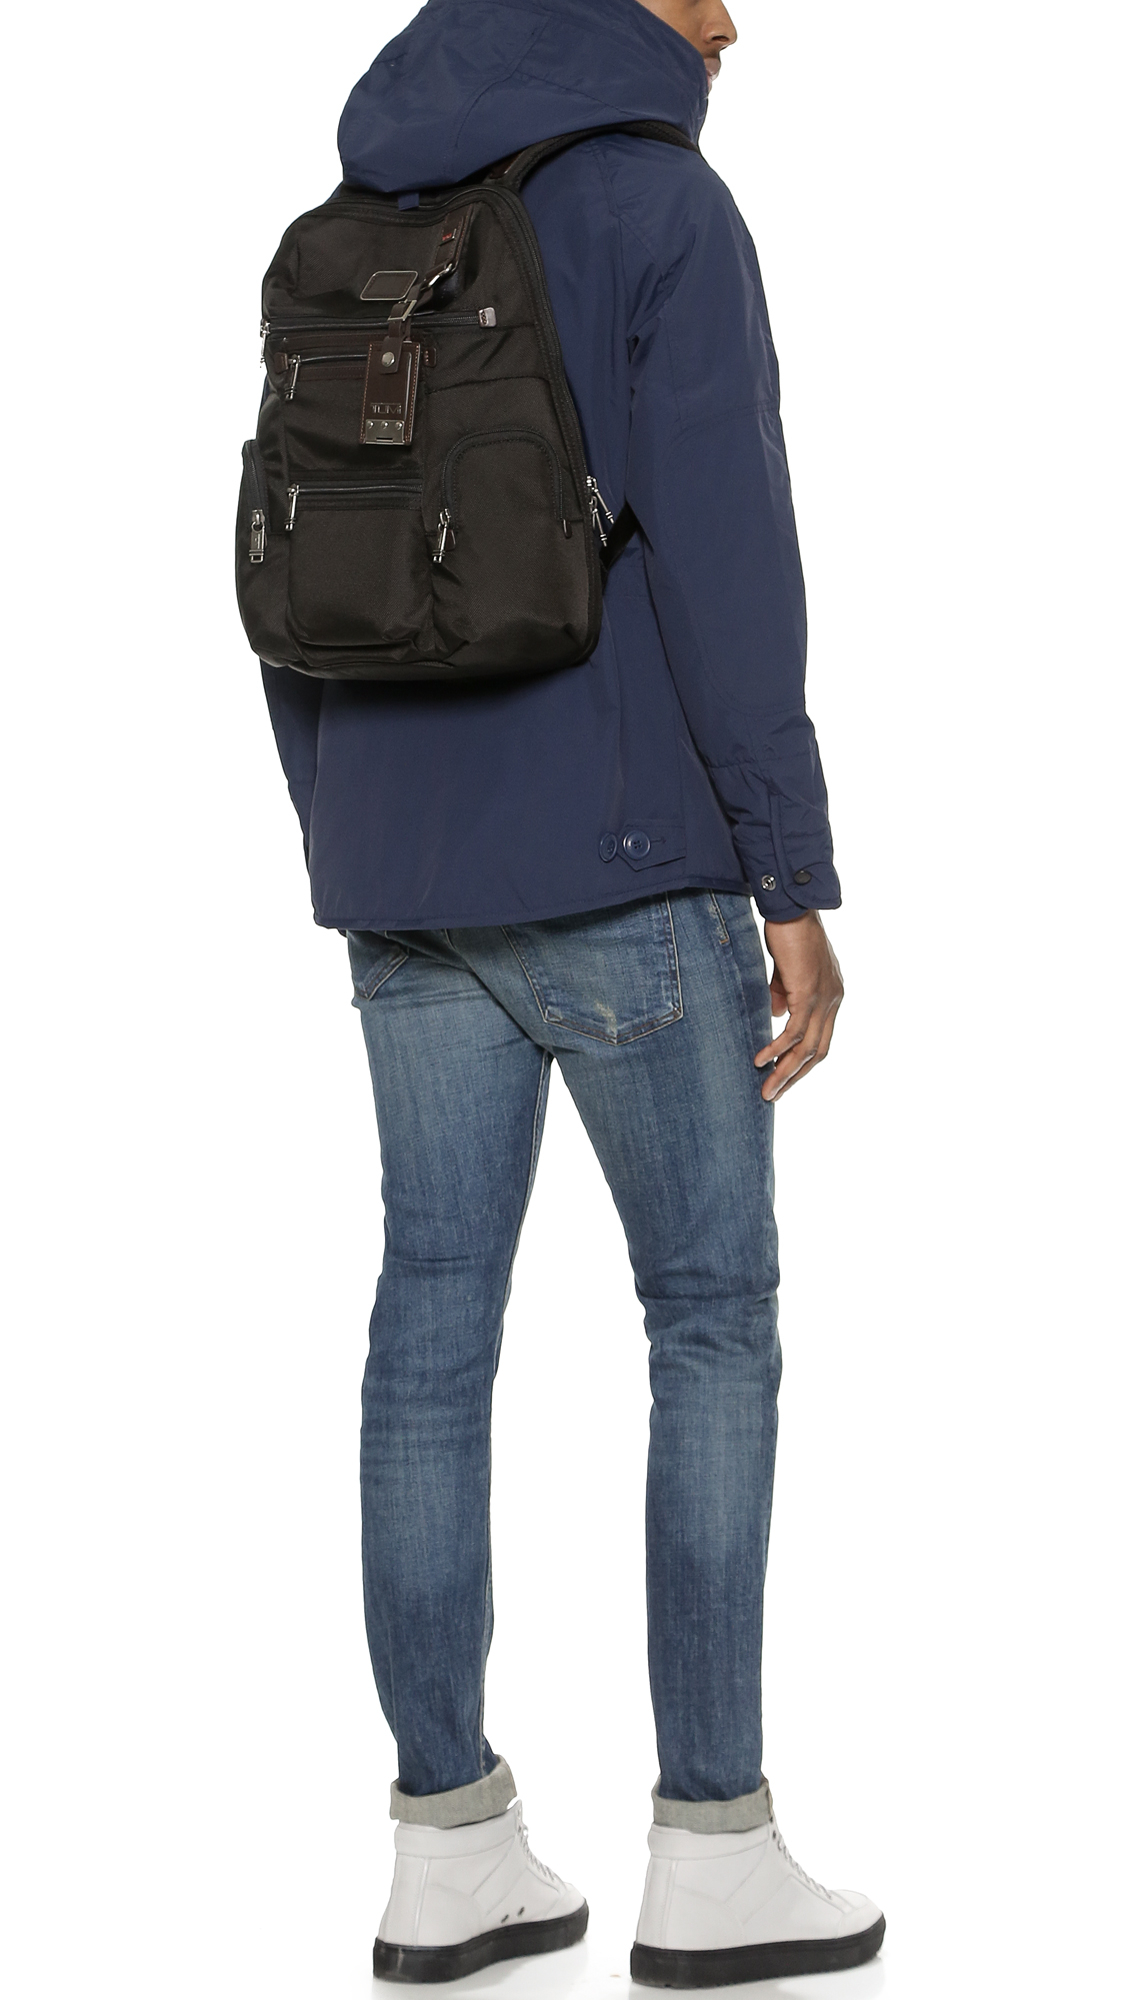 Tumi Alpha Bravo Backpack | Tumi Alpha Bravo Knox Leather Backpack | Tumi Alpha Bravo